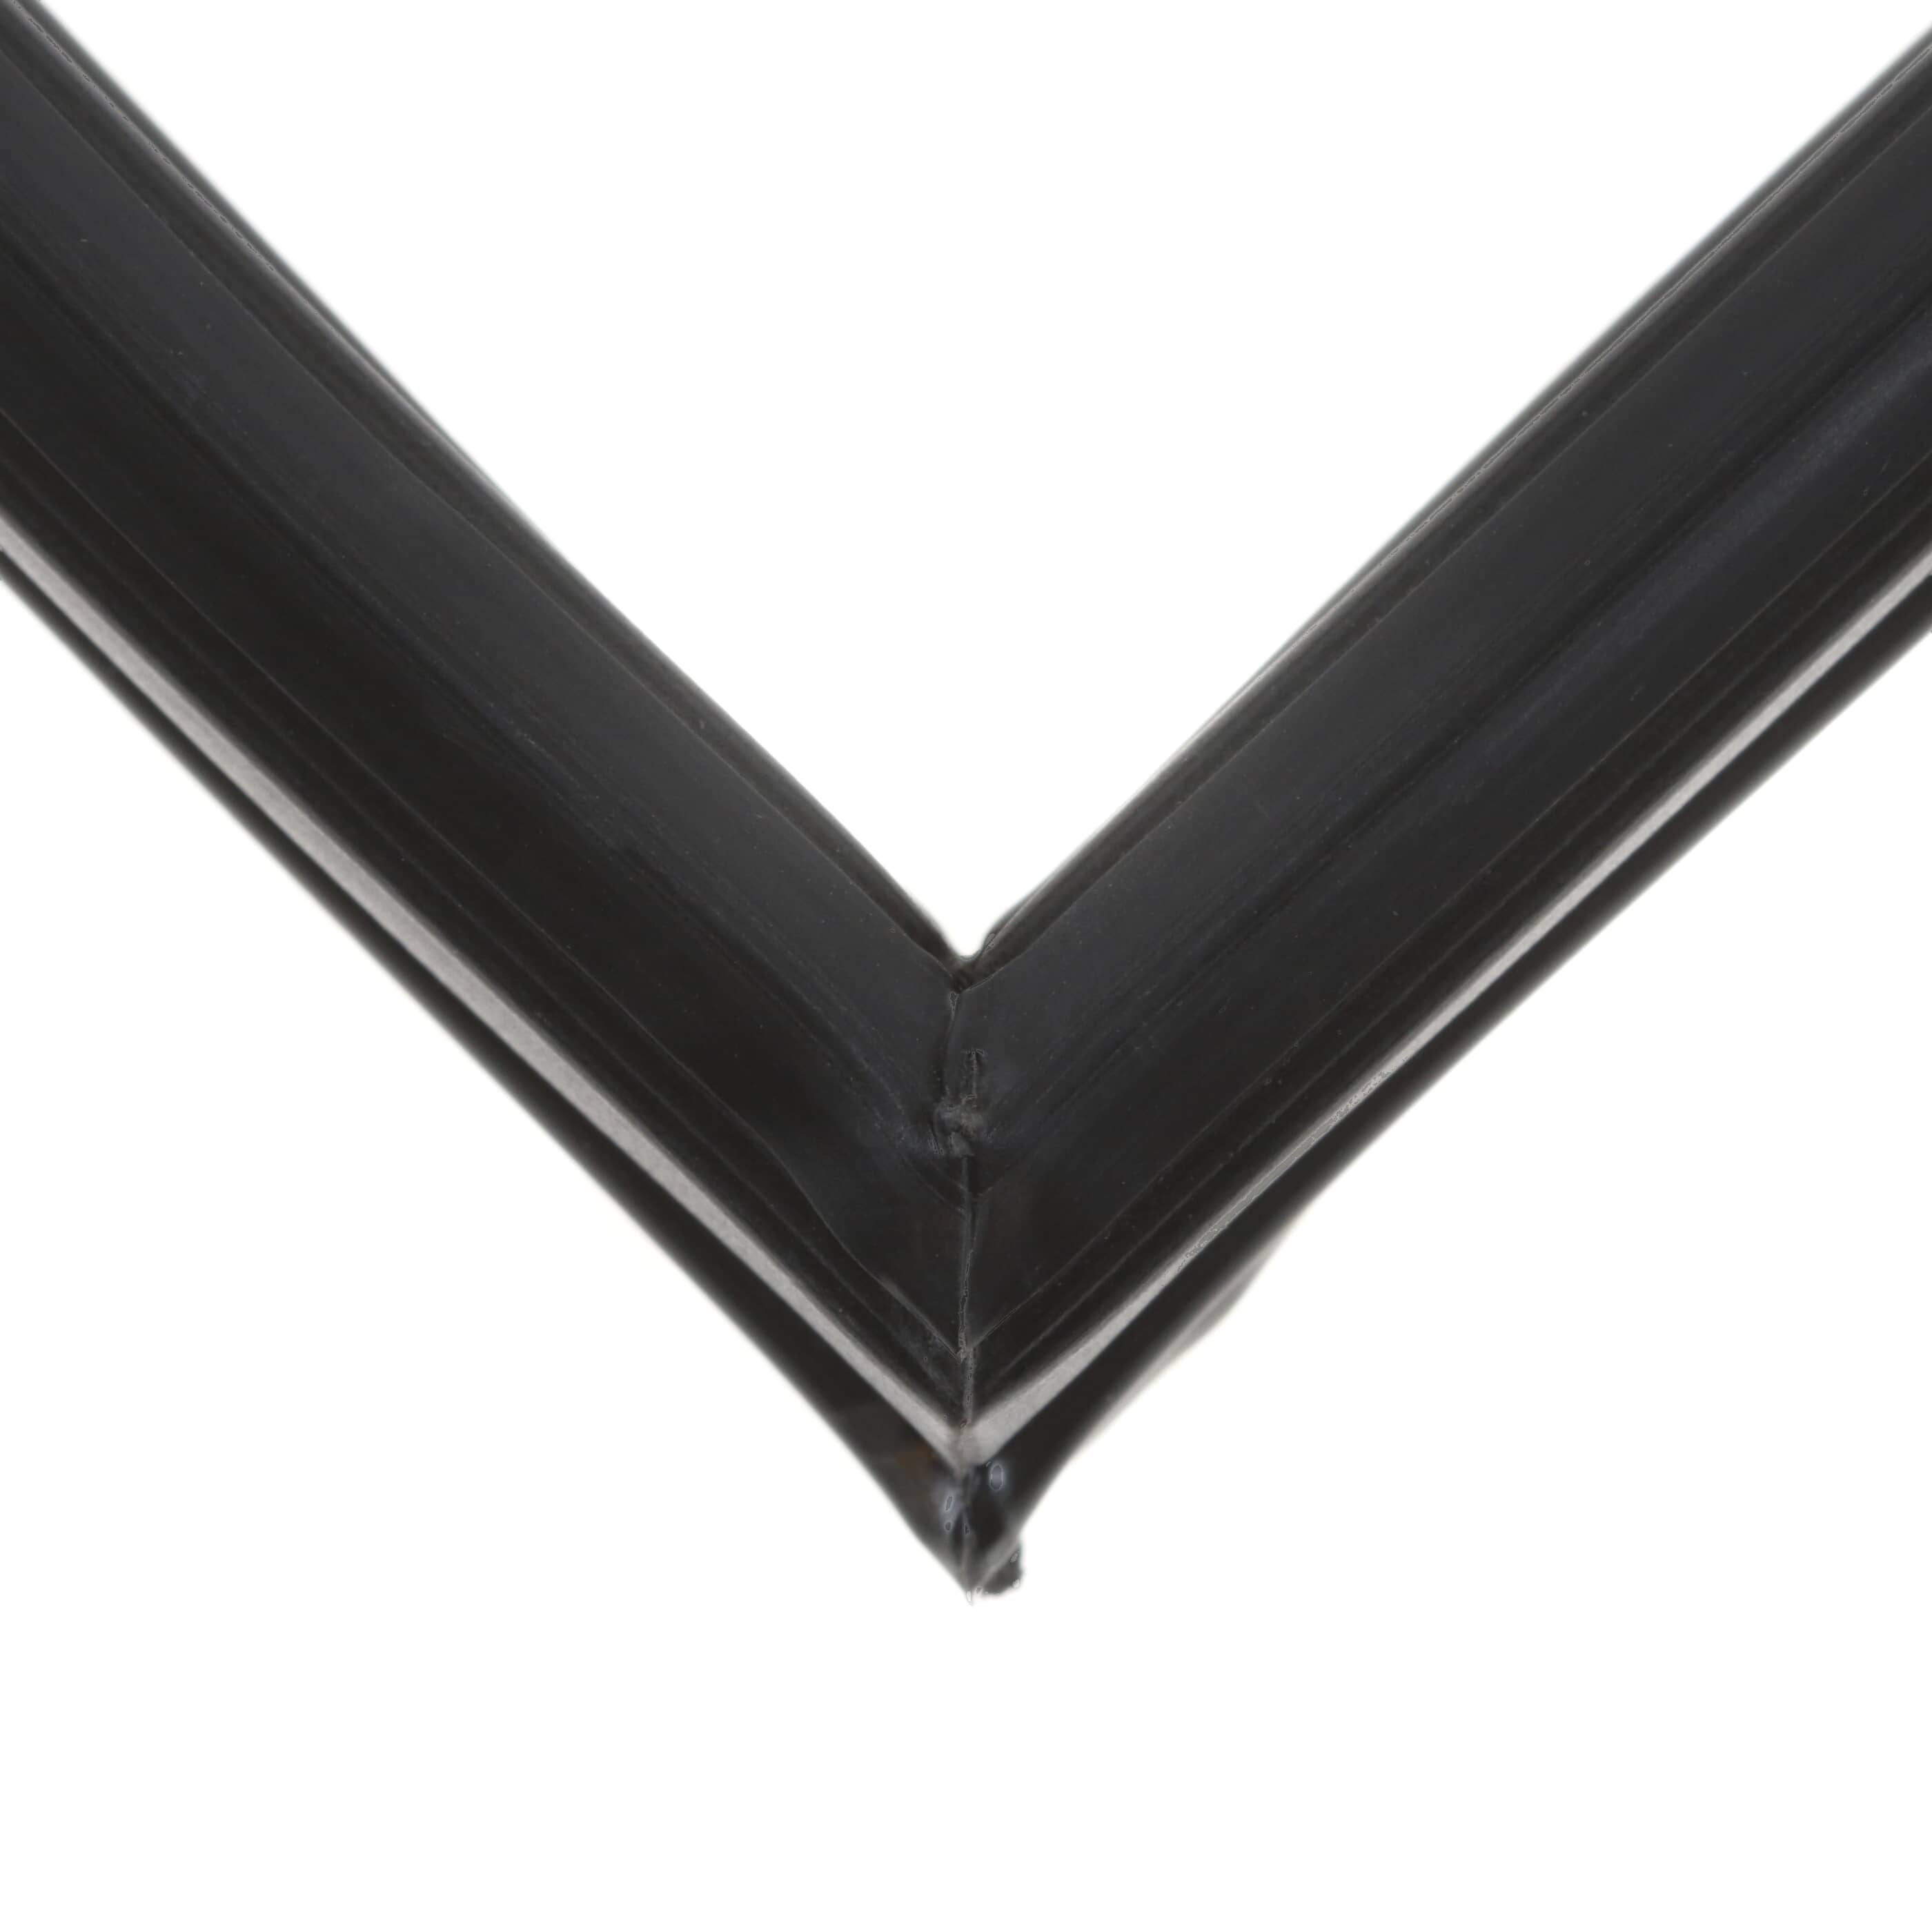 "True 810862 Door Gasket, Black, 25-1/8"" x 54-1/8"", GDM23/T-23"